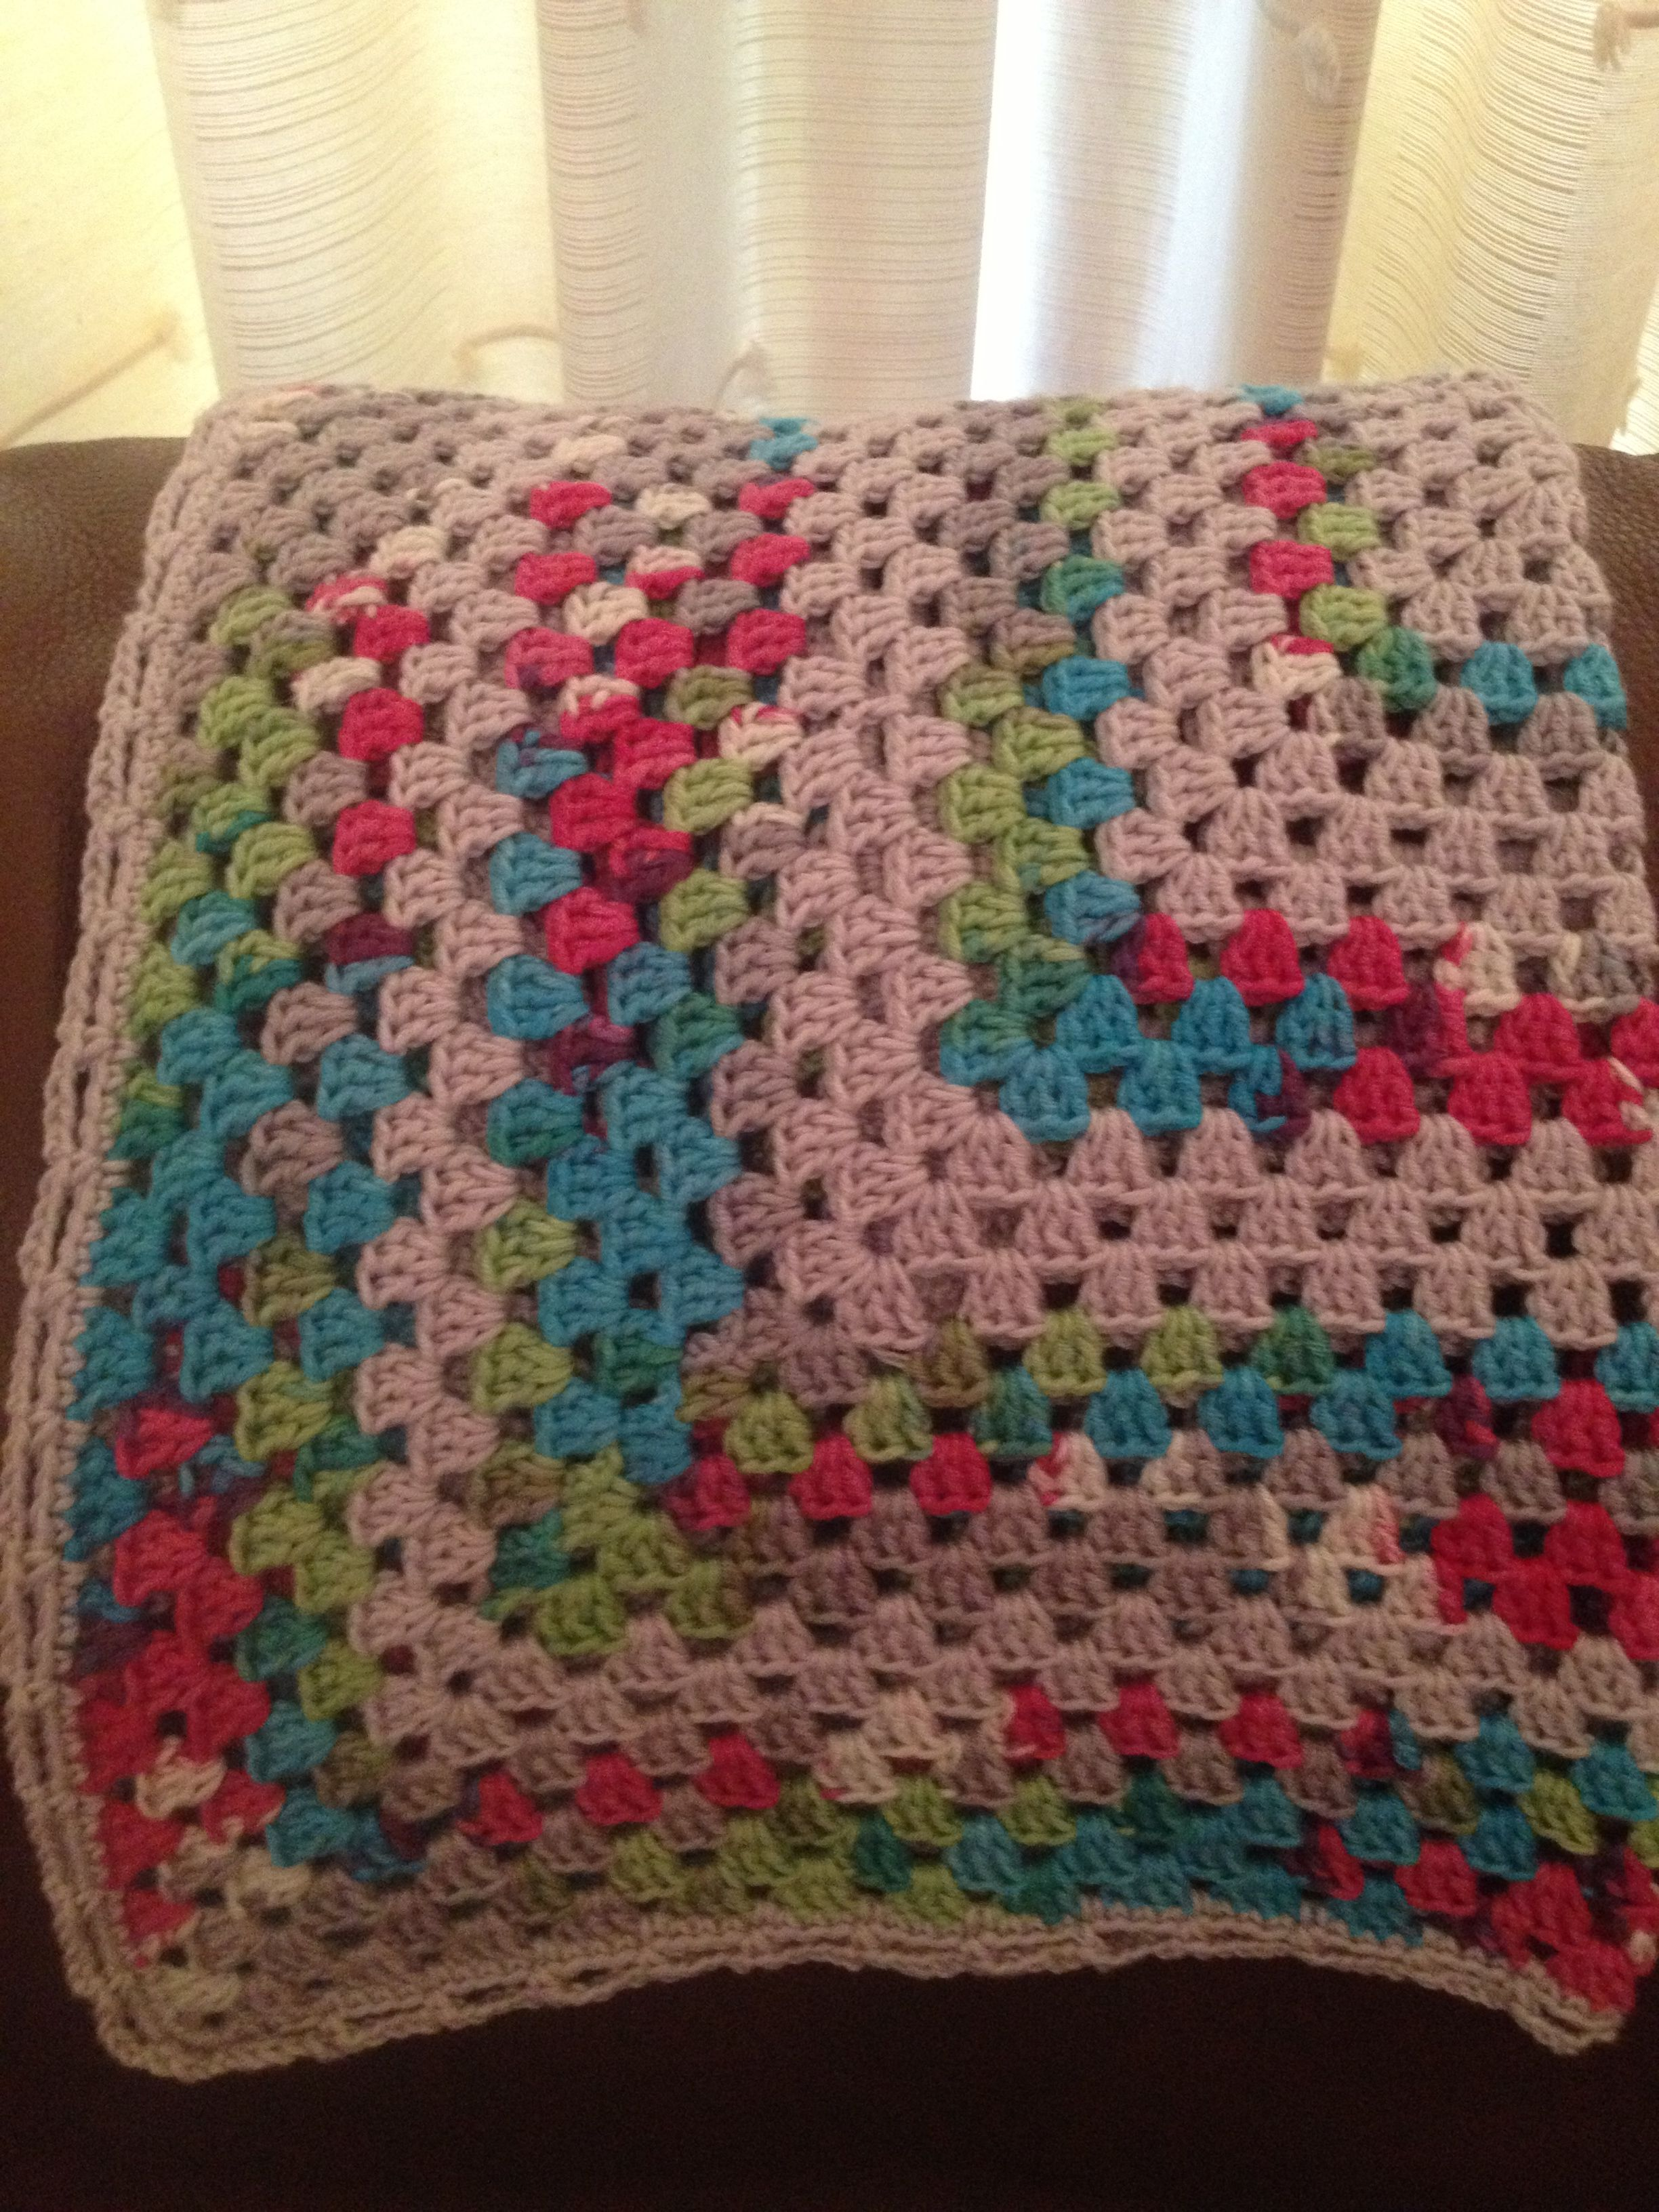 Large granny square blanket in Sirdar Baby Bamboo yarn. So soft to the touch and adorable colours.